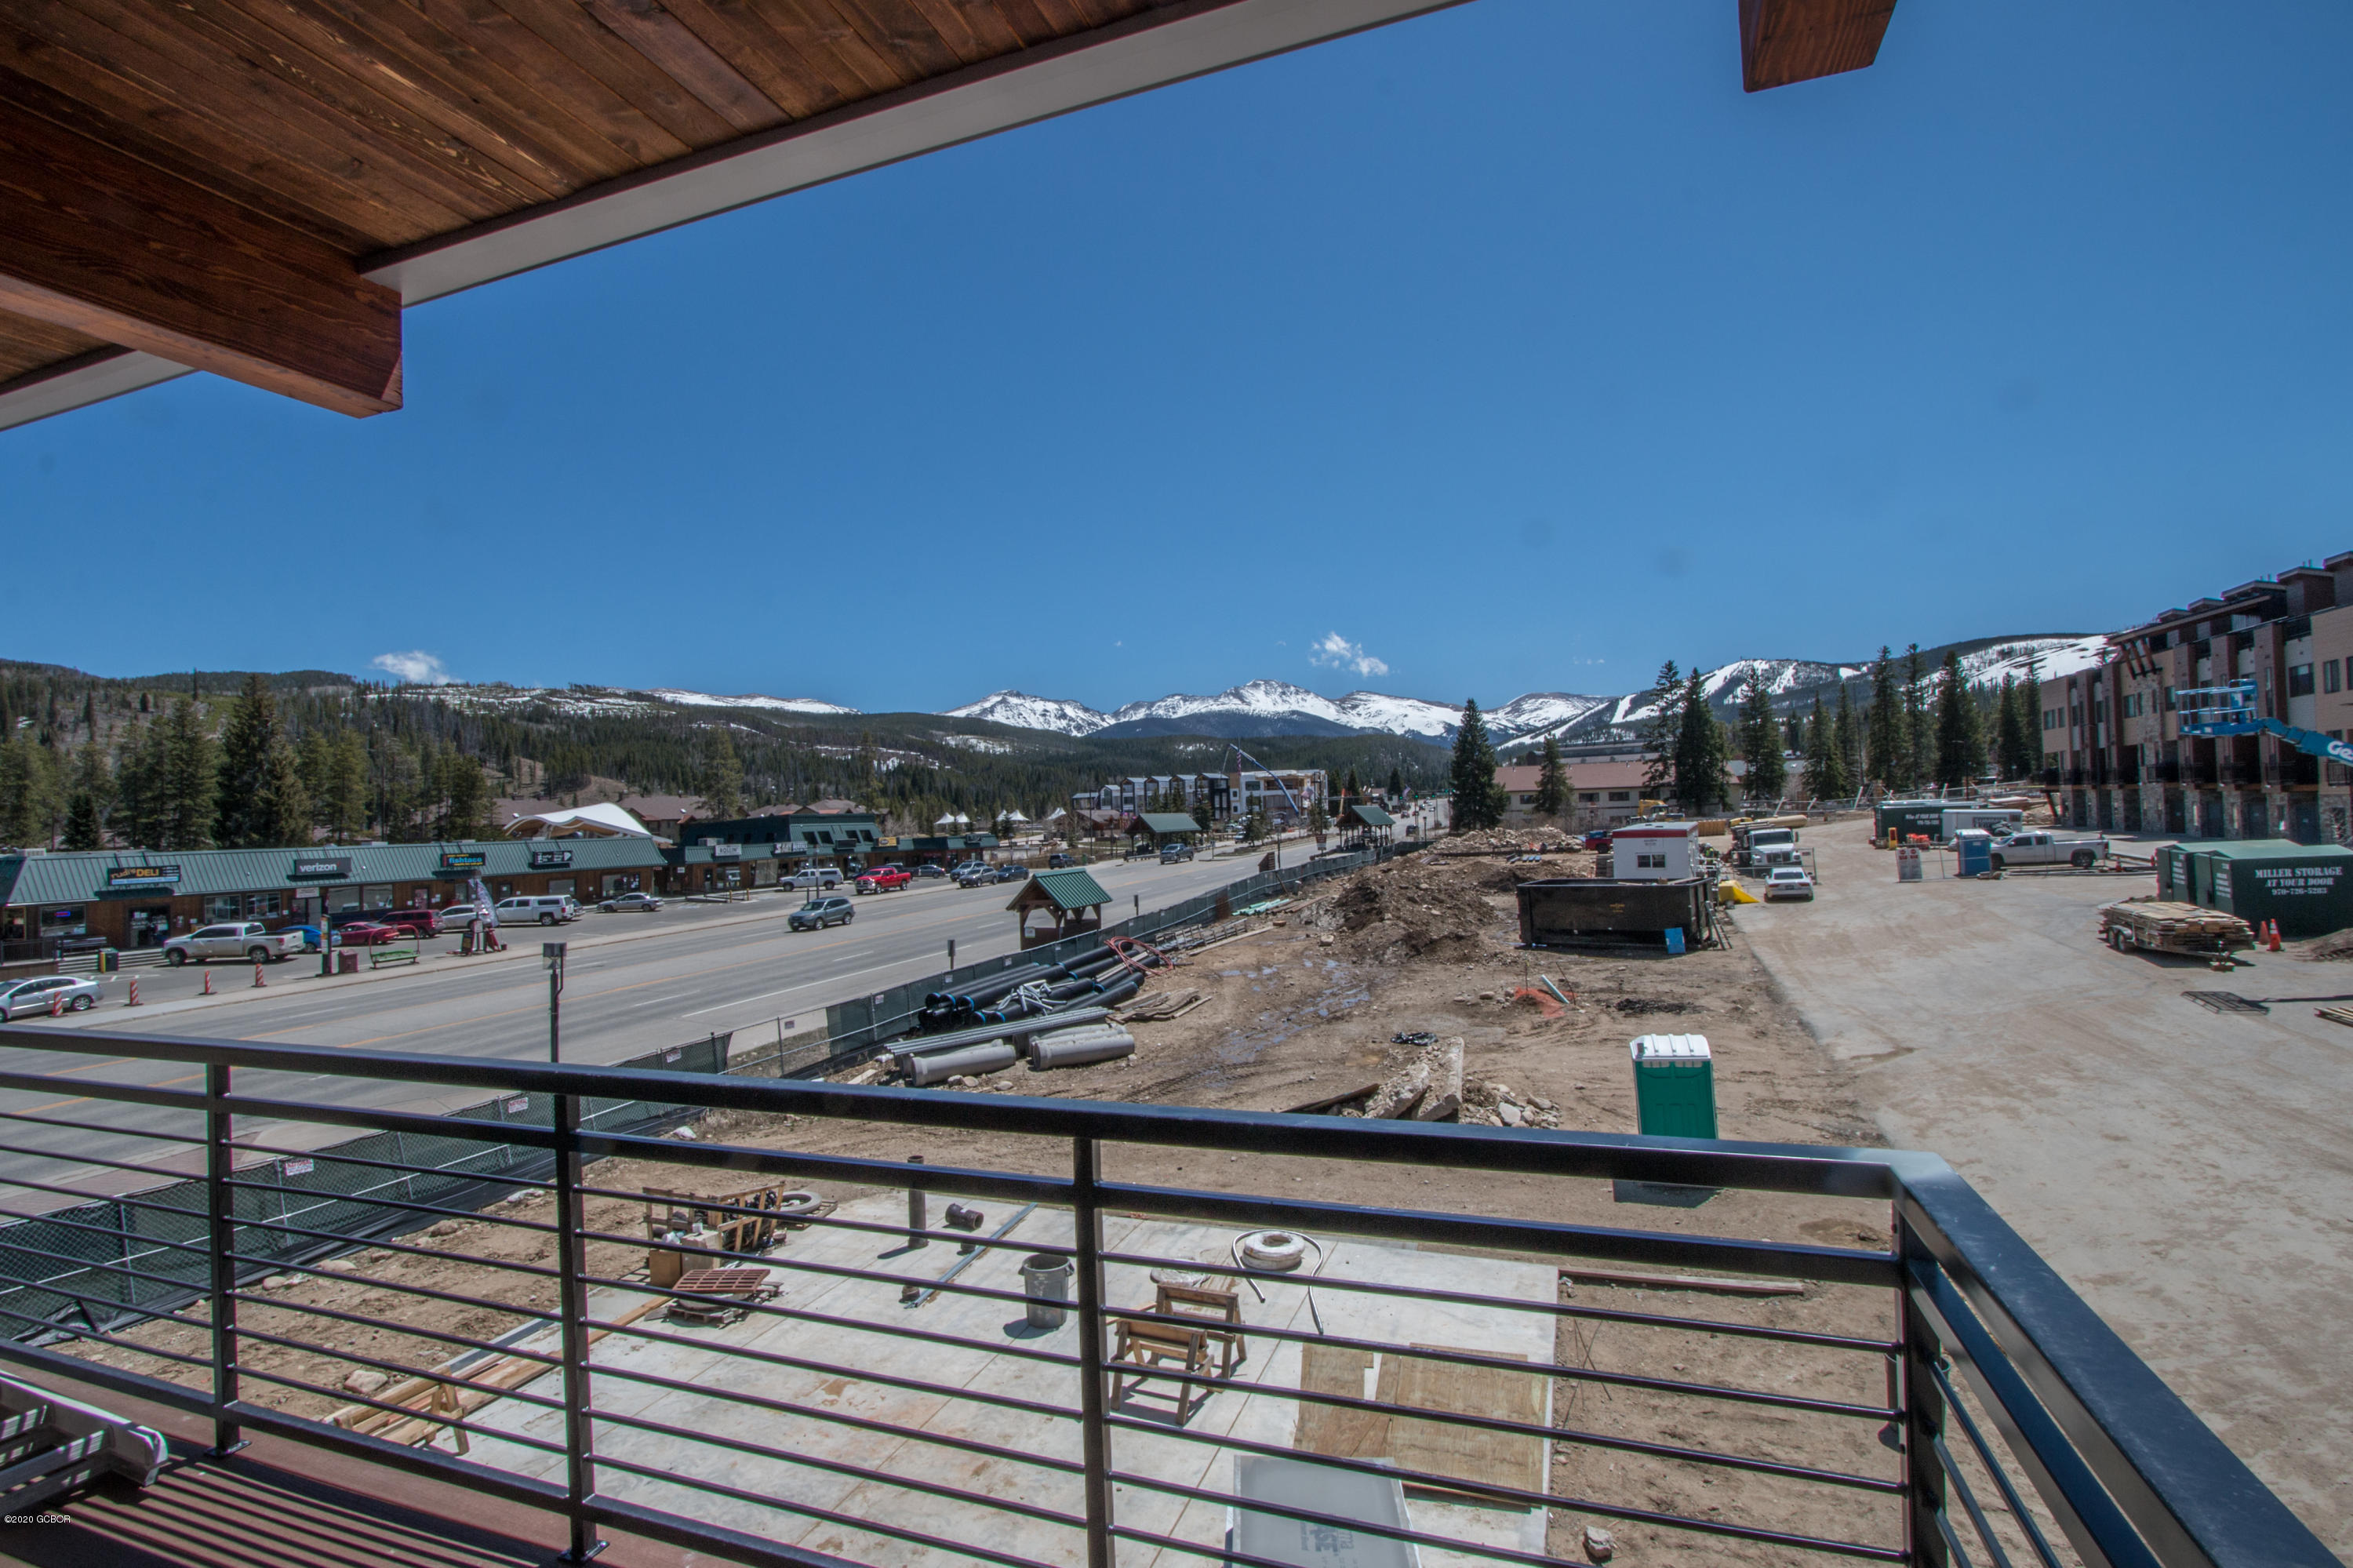 MLS# 20-249 - 4 - 78710 Us Hwy 40  #, Winter Park, CO 80482